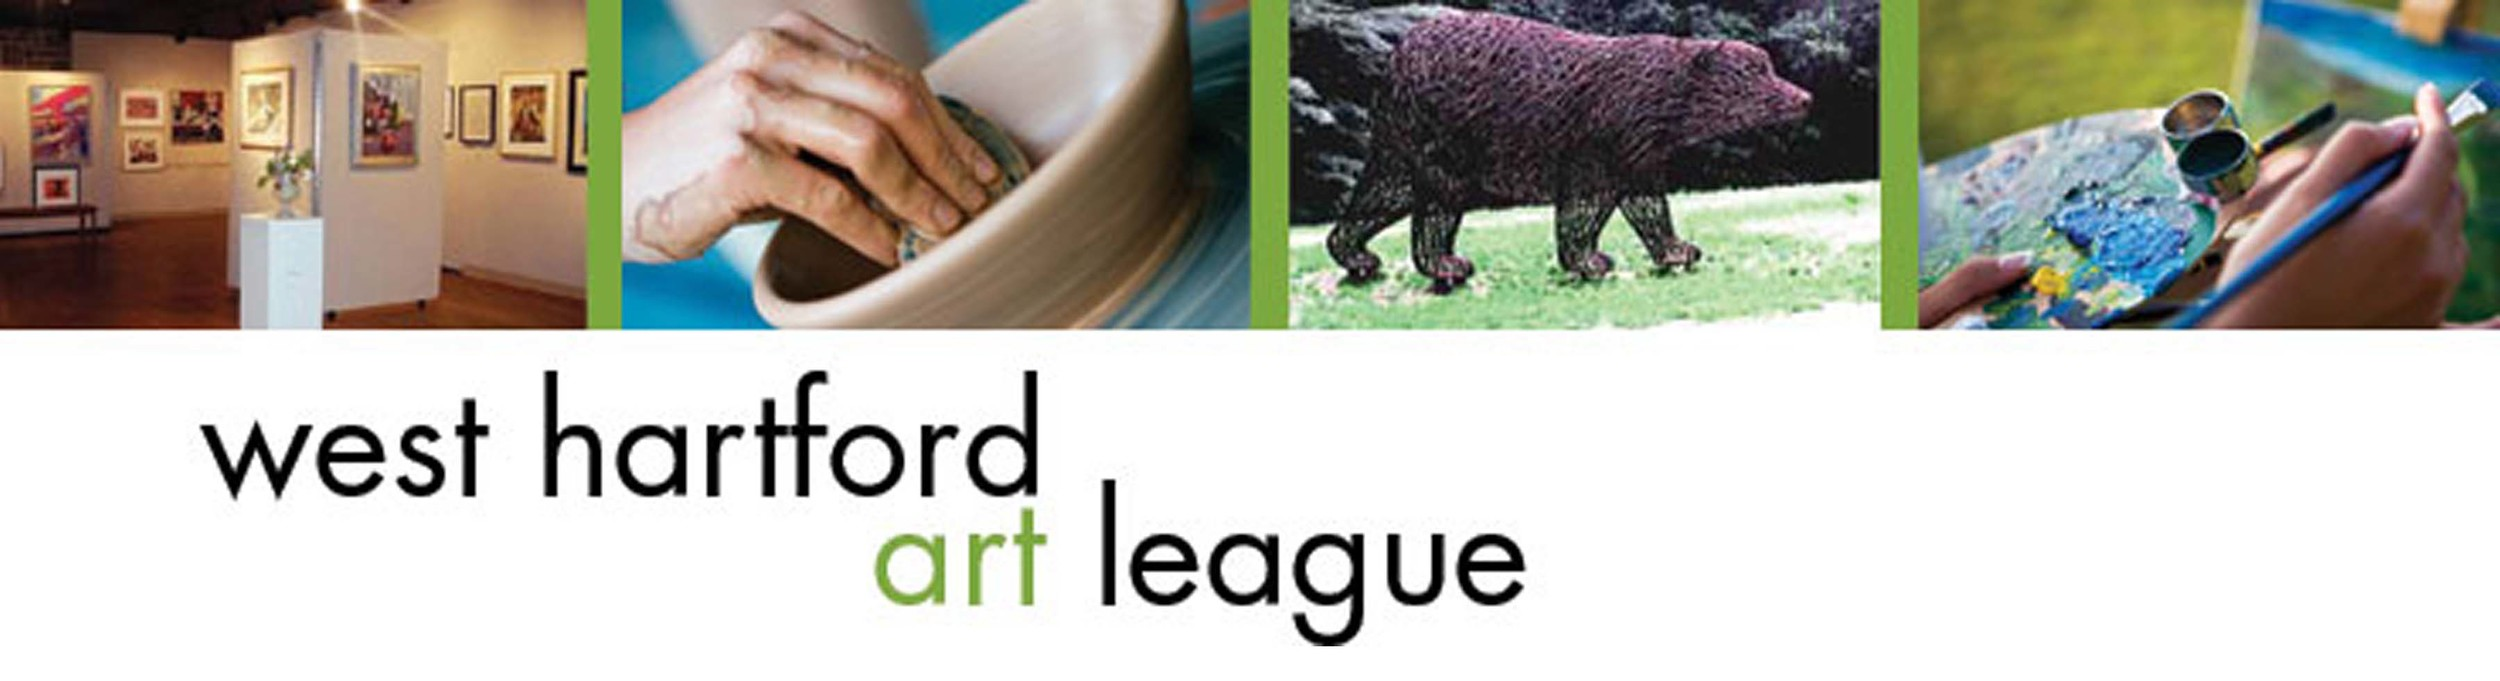 West Hartford Art League